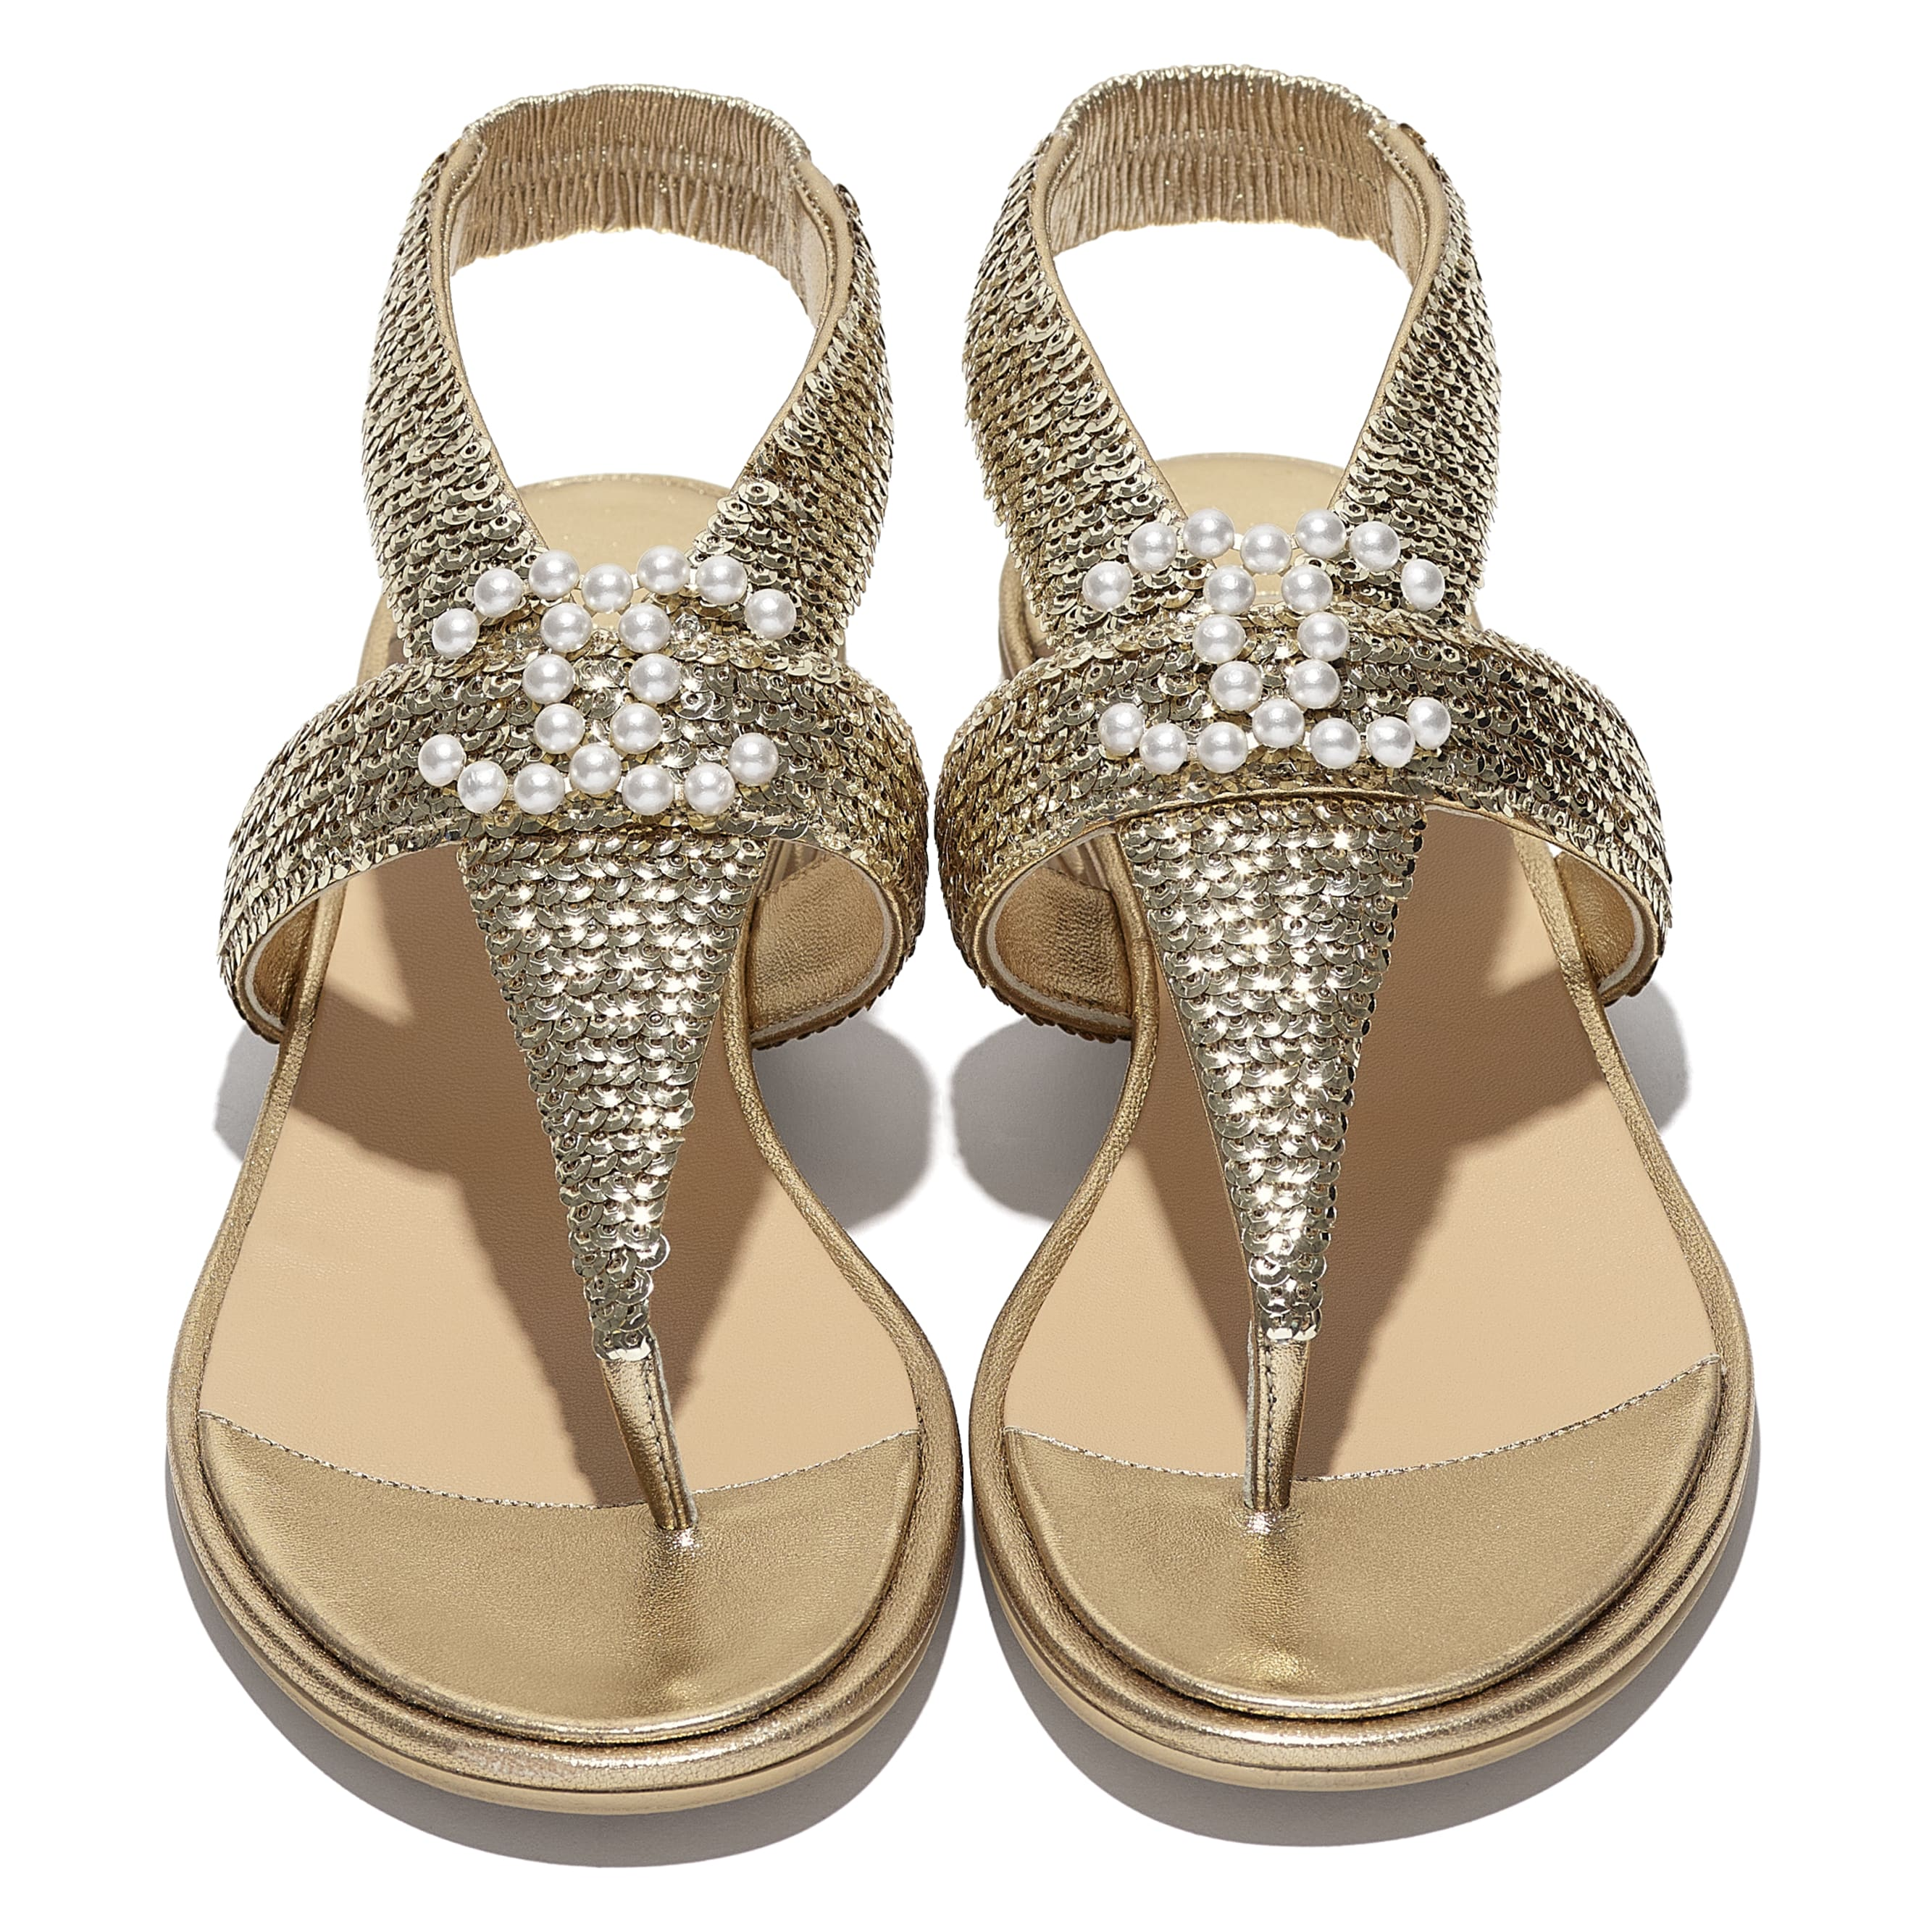 Sandals - Gold - Laminated Lambskin & Sequins - CHANEL - Extra view - see standard sized version